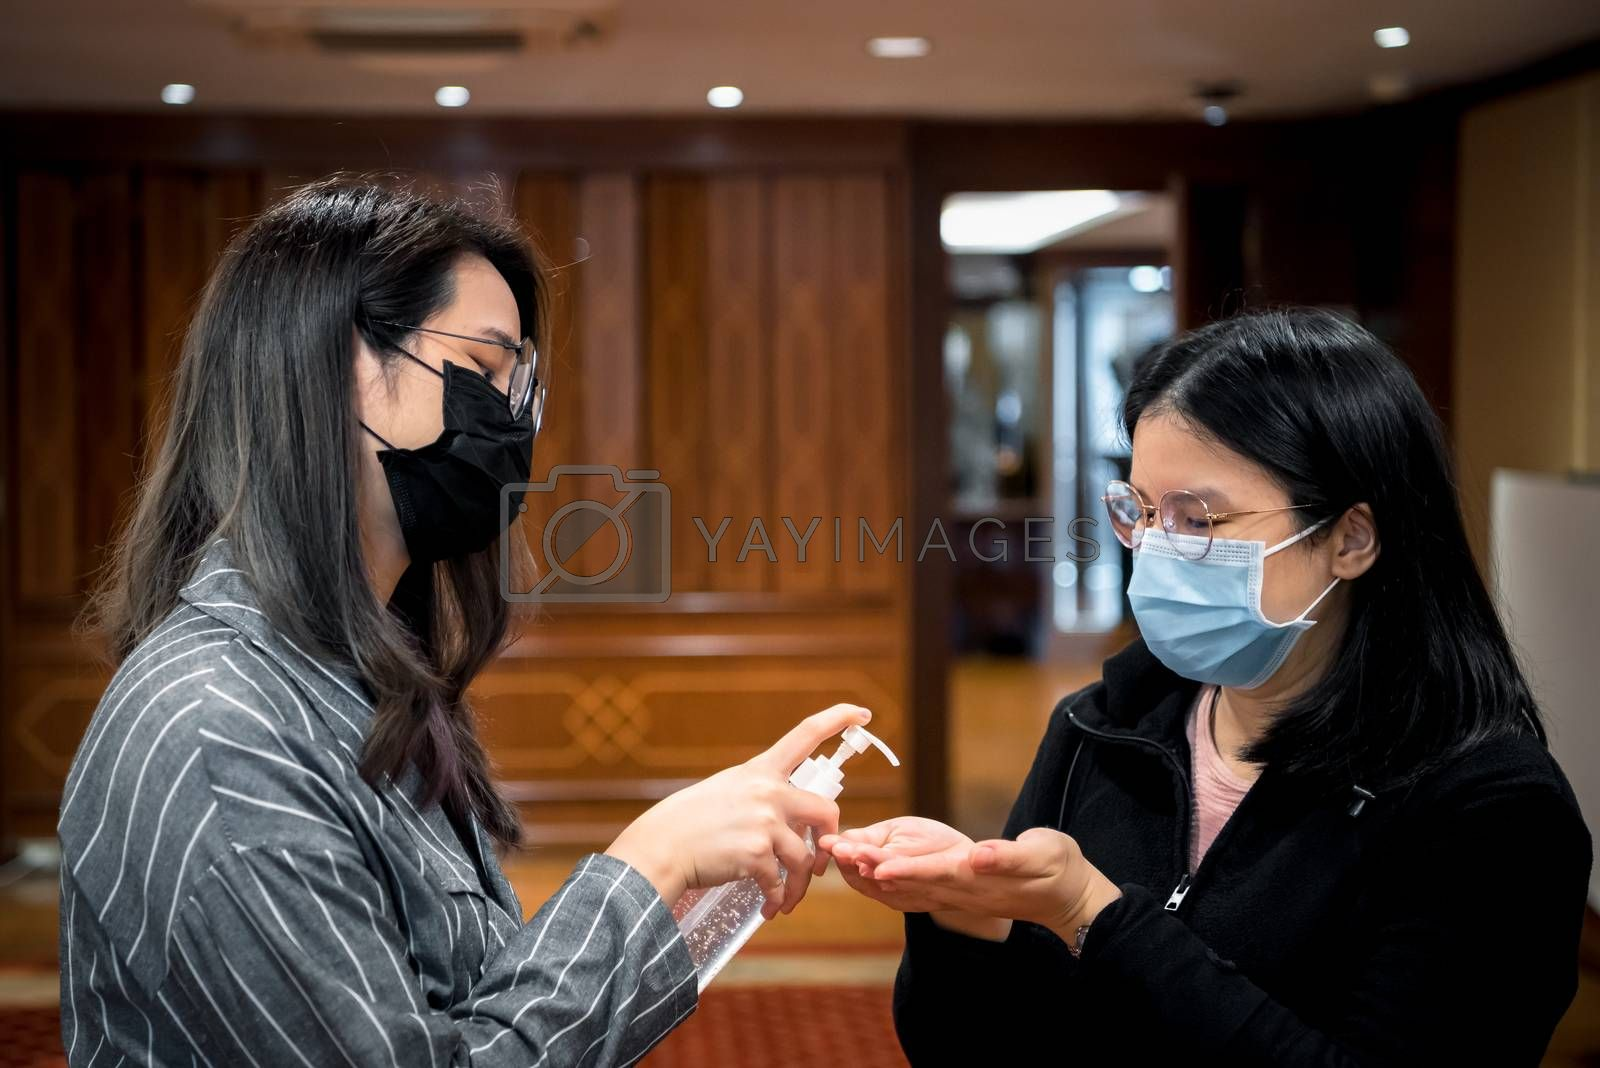 Asian women wearing mask and alcohol antibacterial hand gel respiratory protection mask against epidemic flu covid19 or corona virus with fear emotion in concept illness, outbreak, healthcare in life